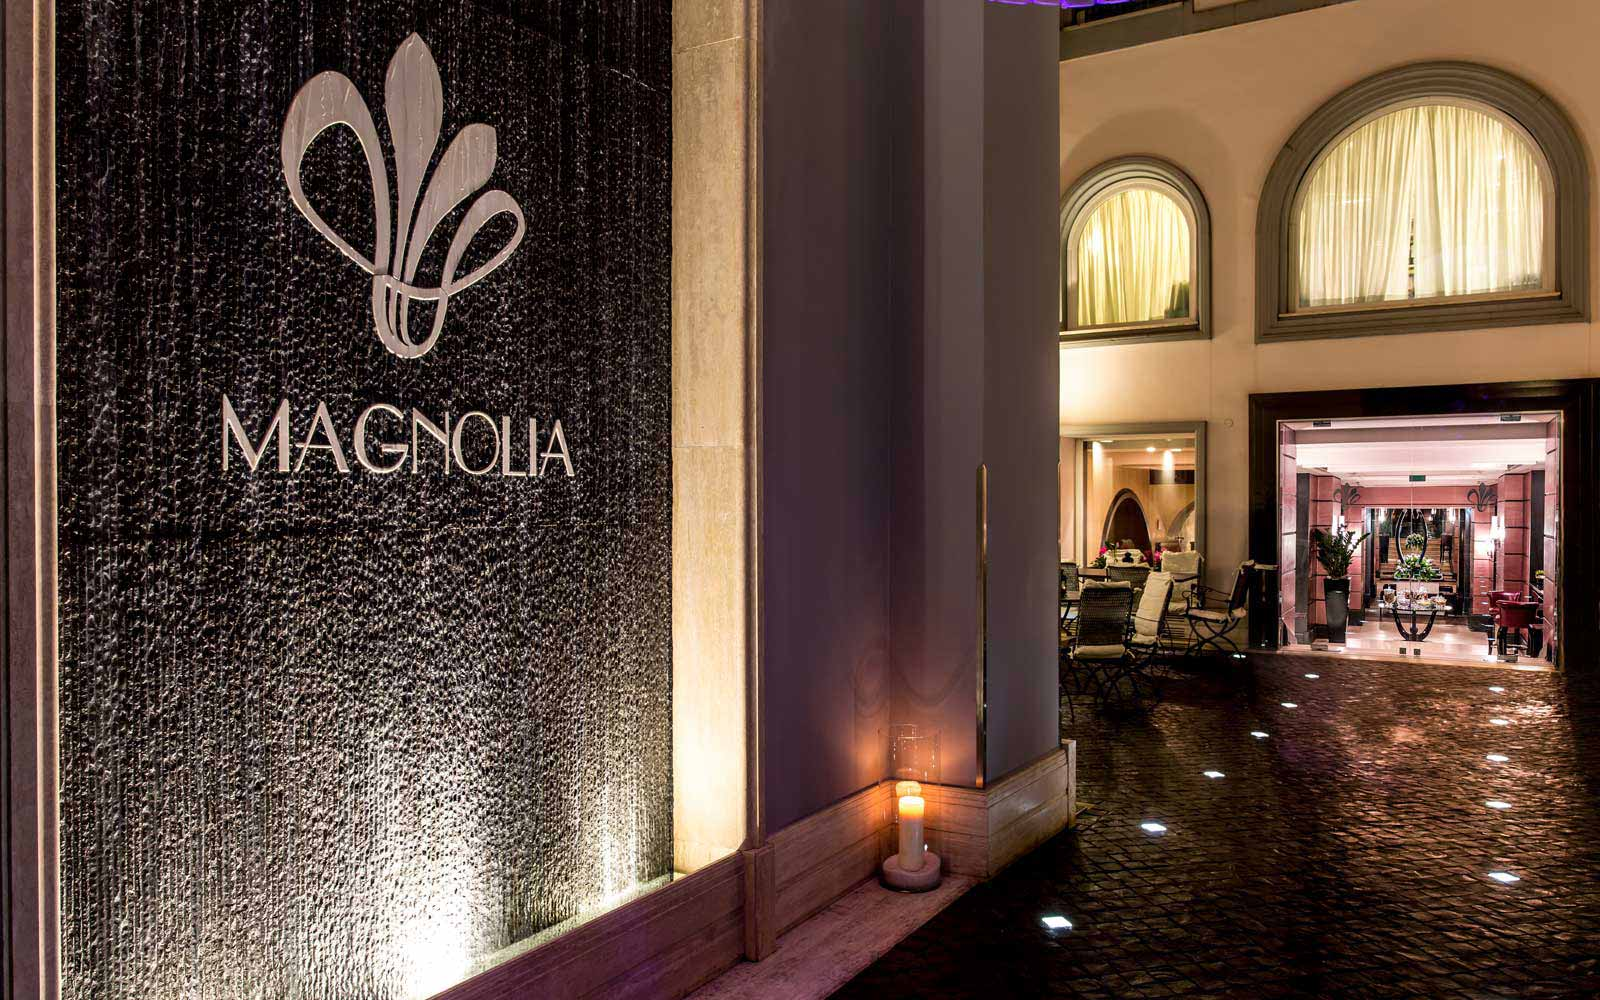 Magnolia entrance at the Grand Hotel Via Veneto